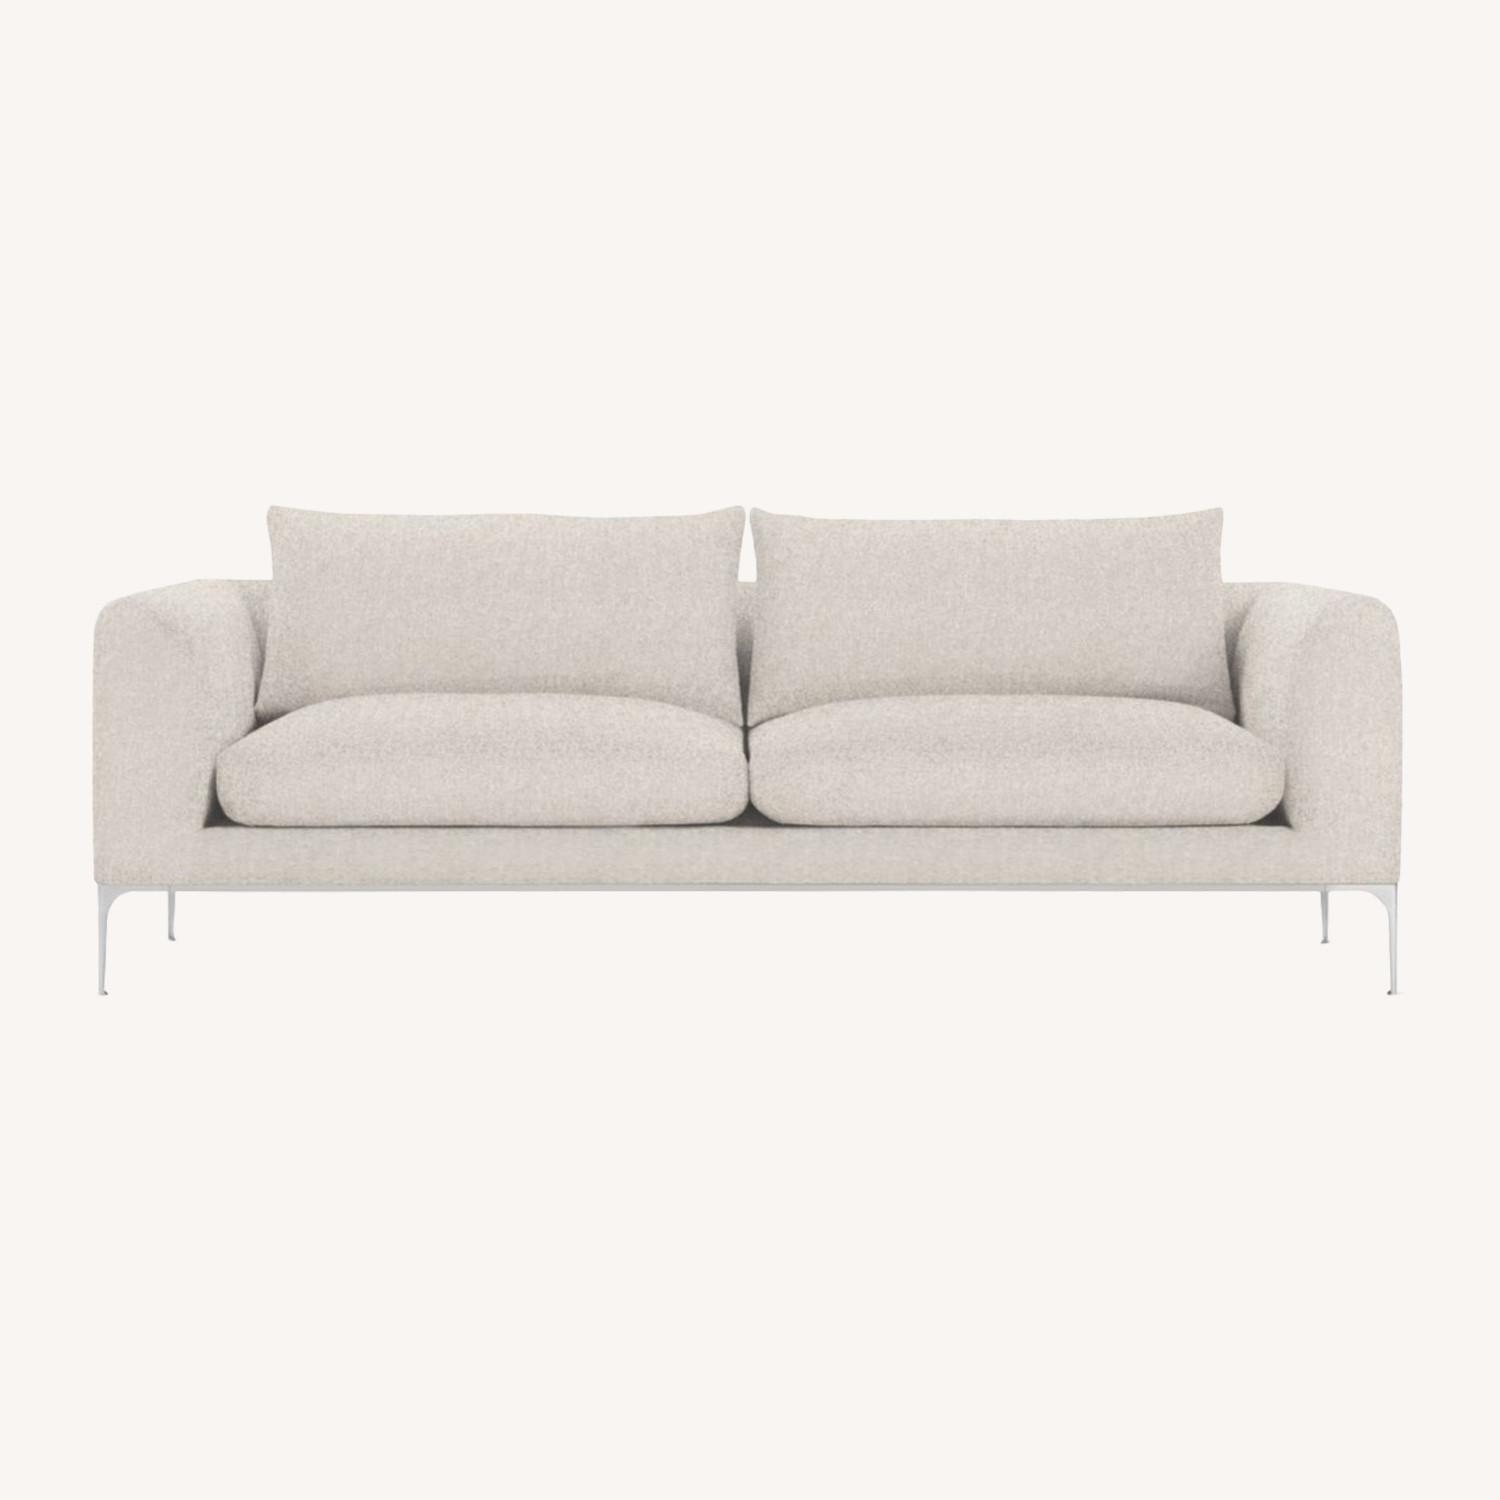 Beautiful DWR Couch - image-0